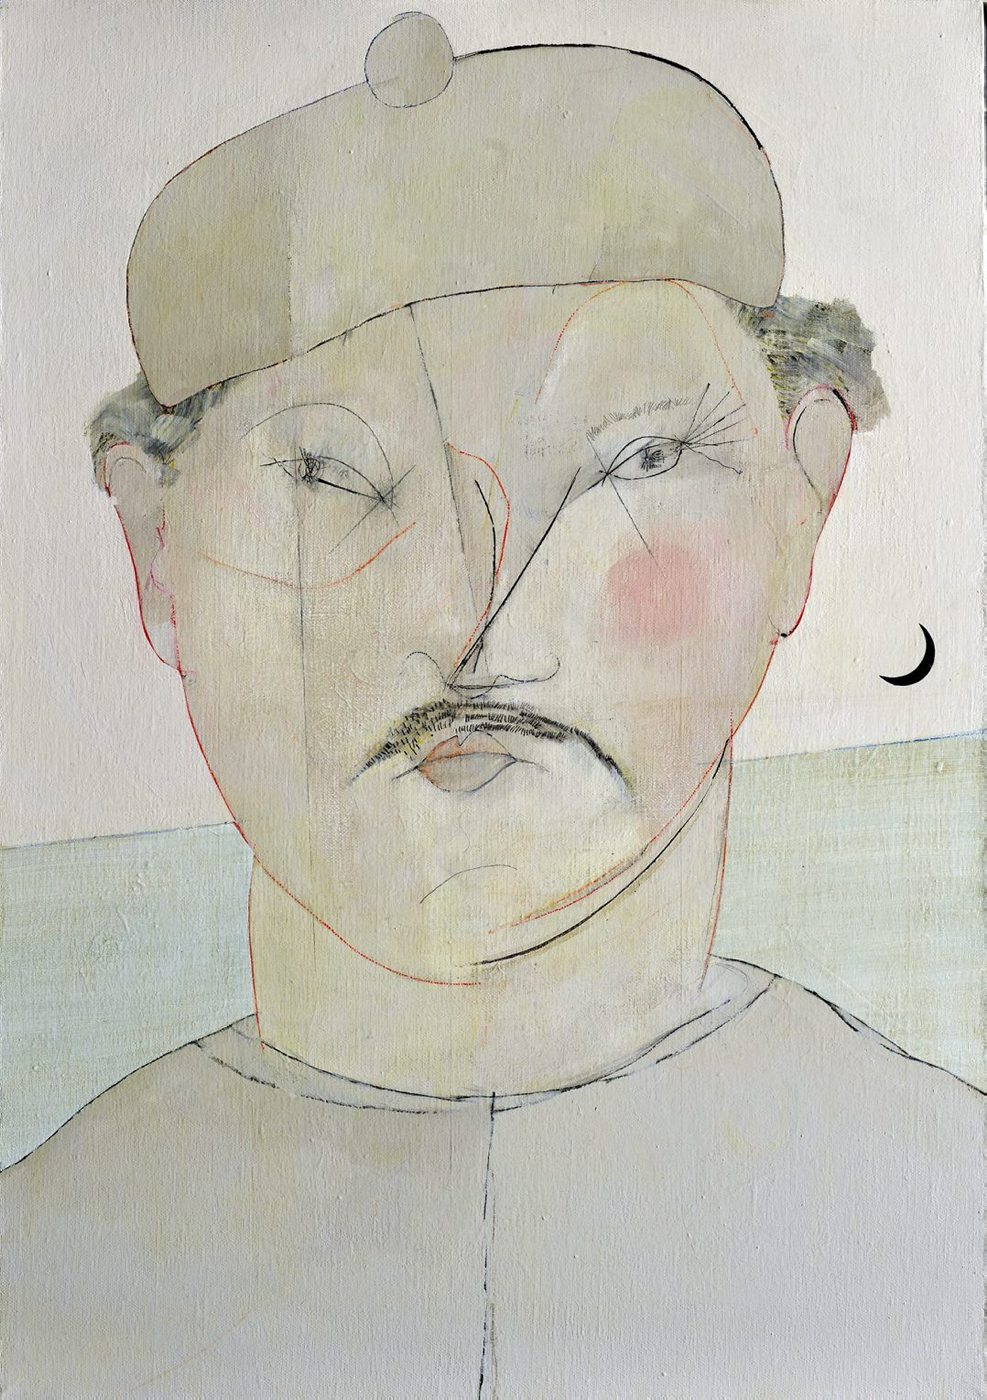 The merchant of Kaohsiung, 50x70, 2011